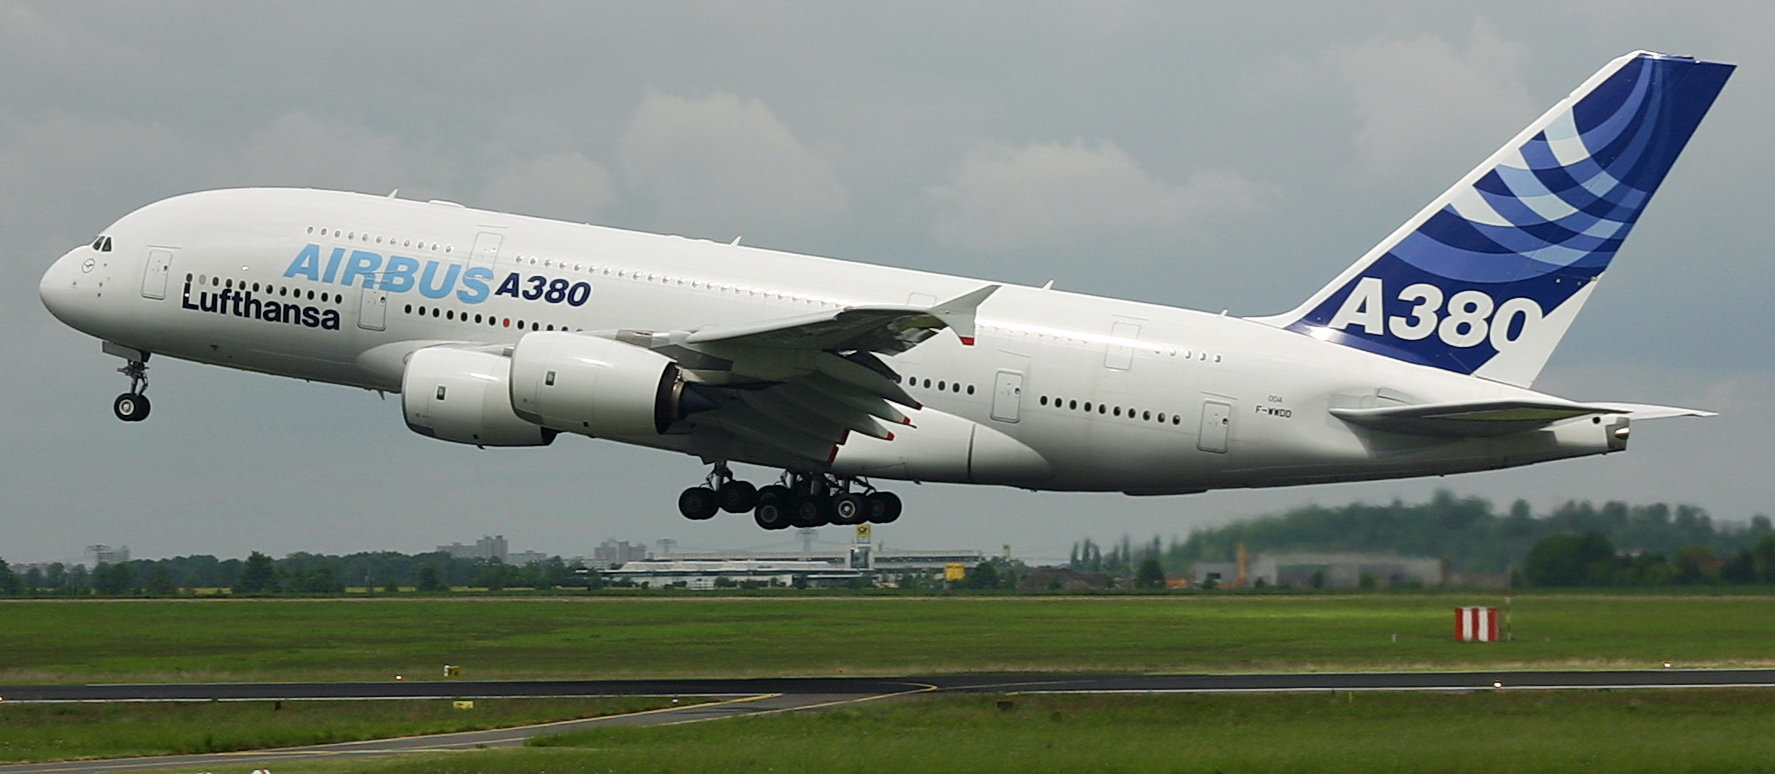 Airbus A380 #6